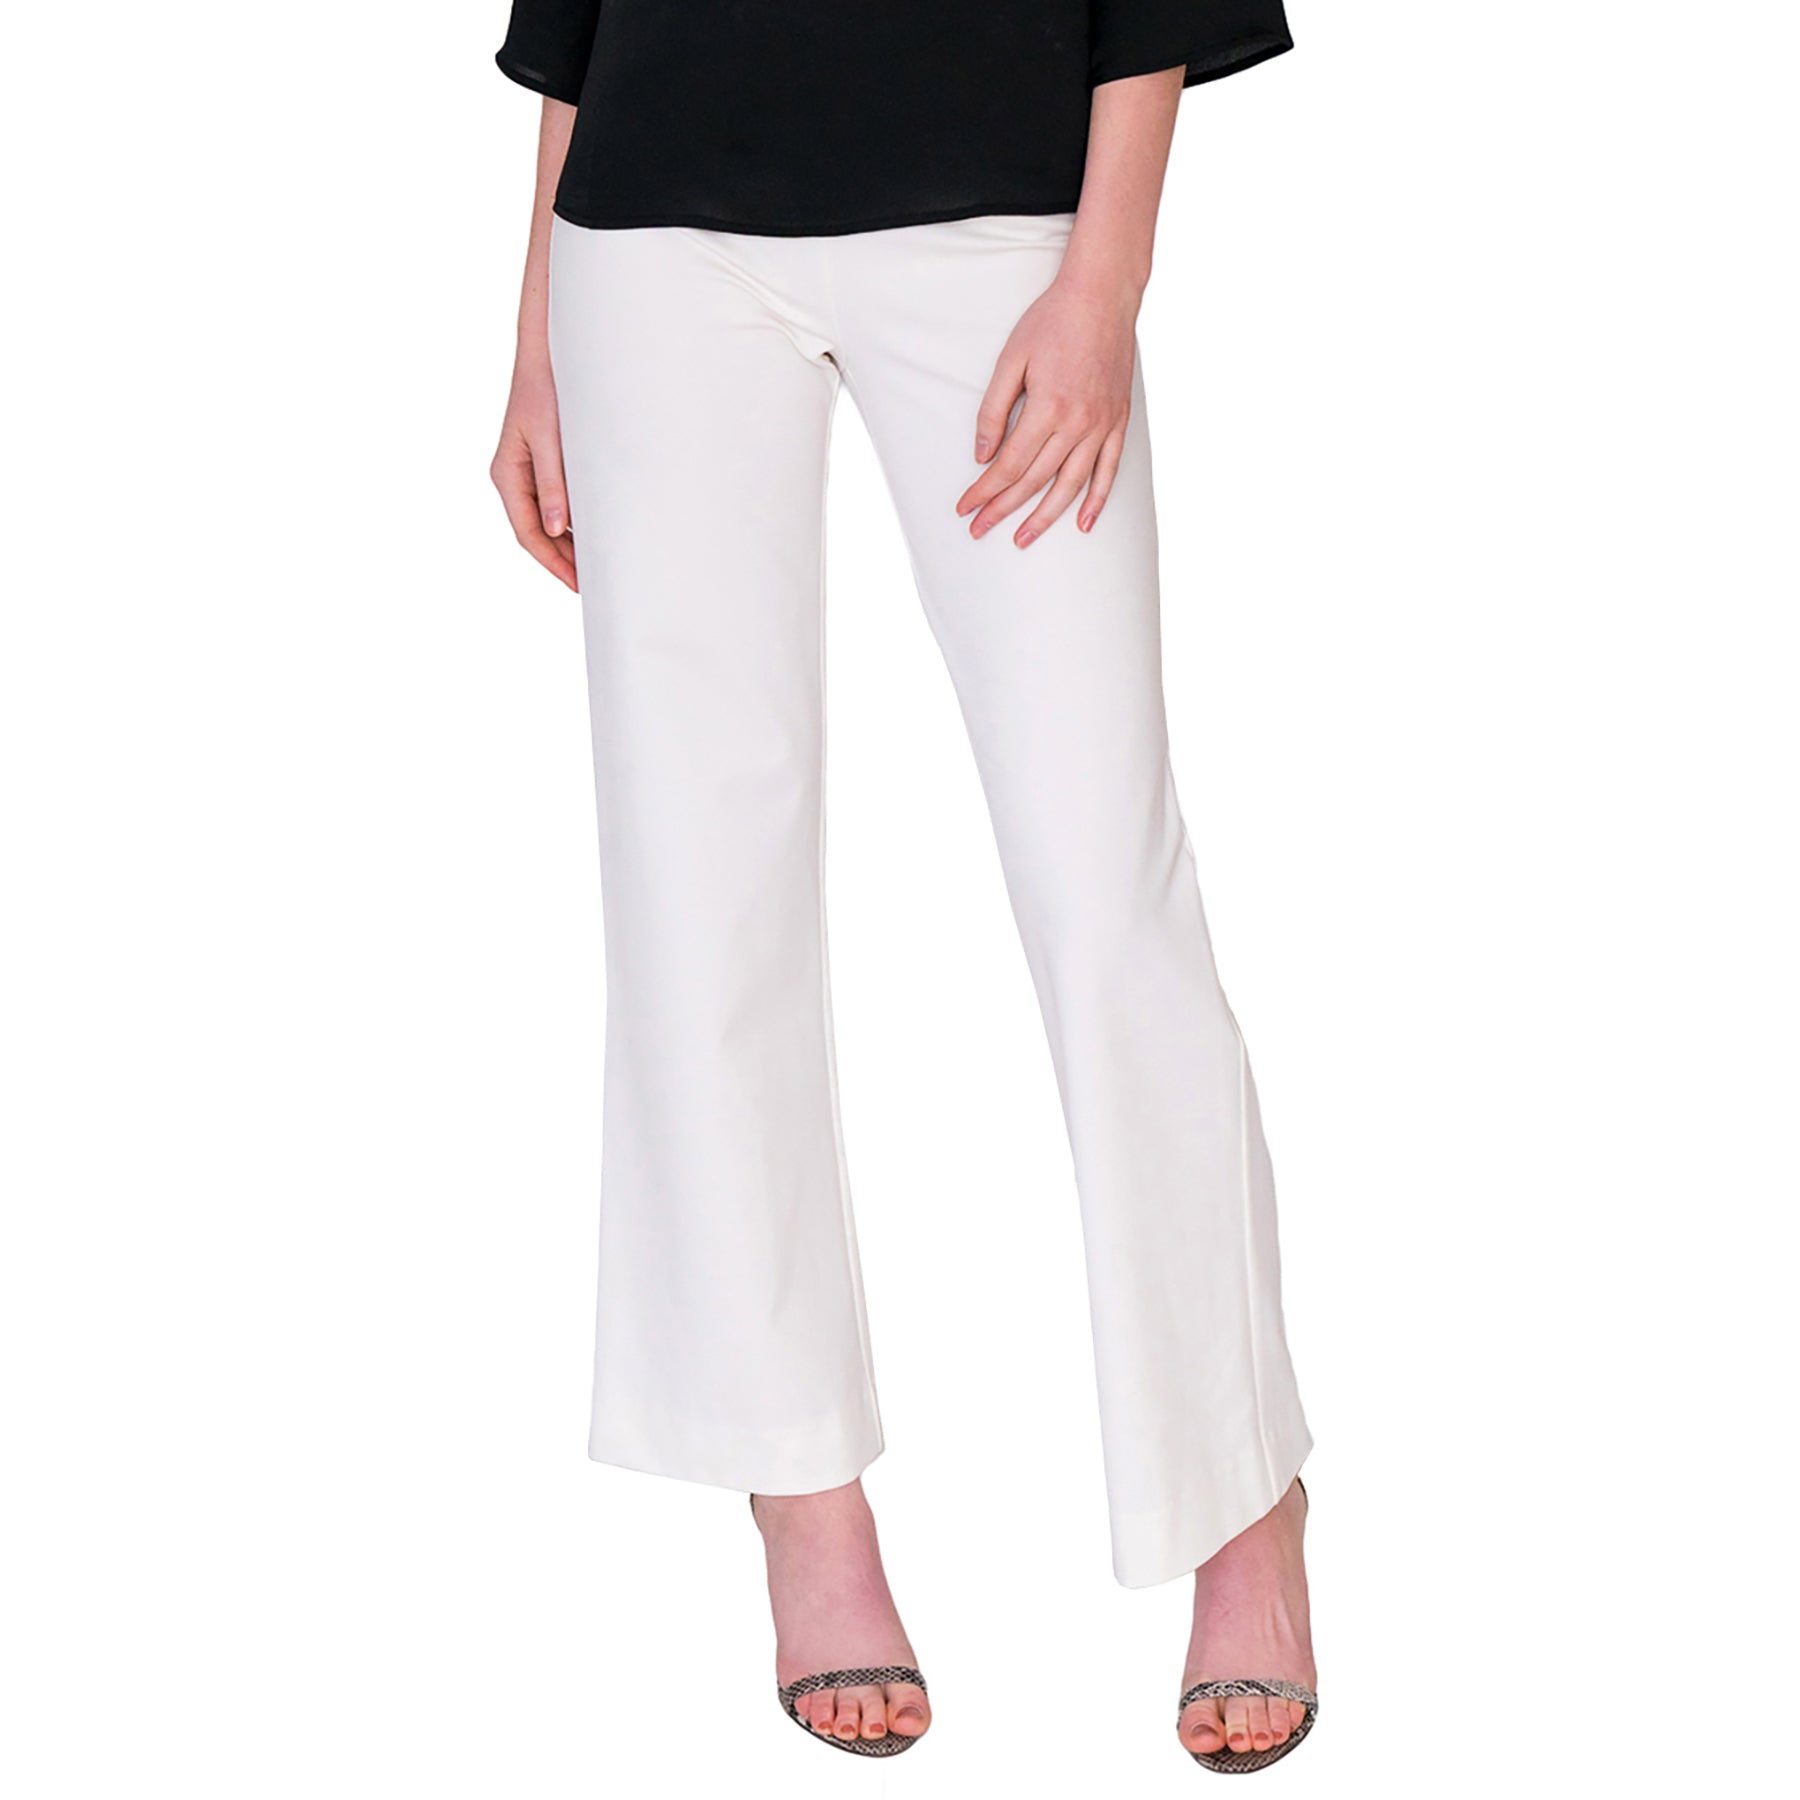 Toby Palazzo Pant in Solid White - Elizabeth Ackerman New York